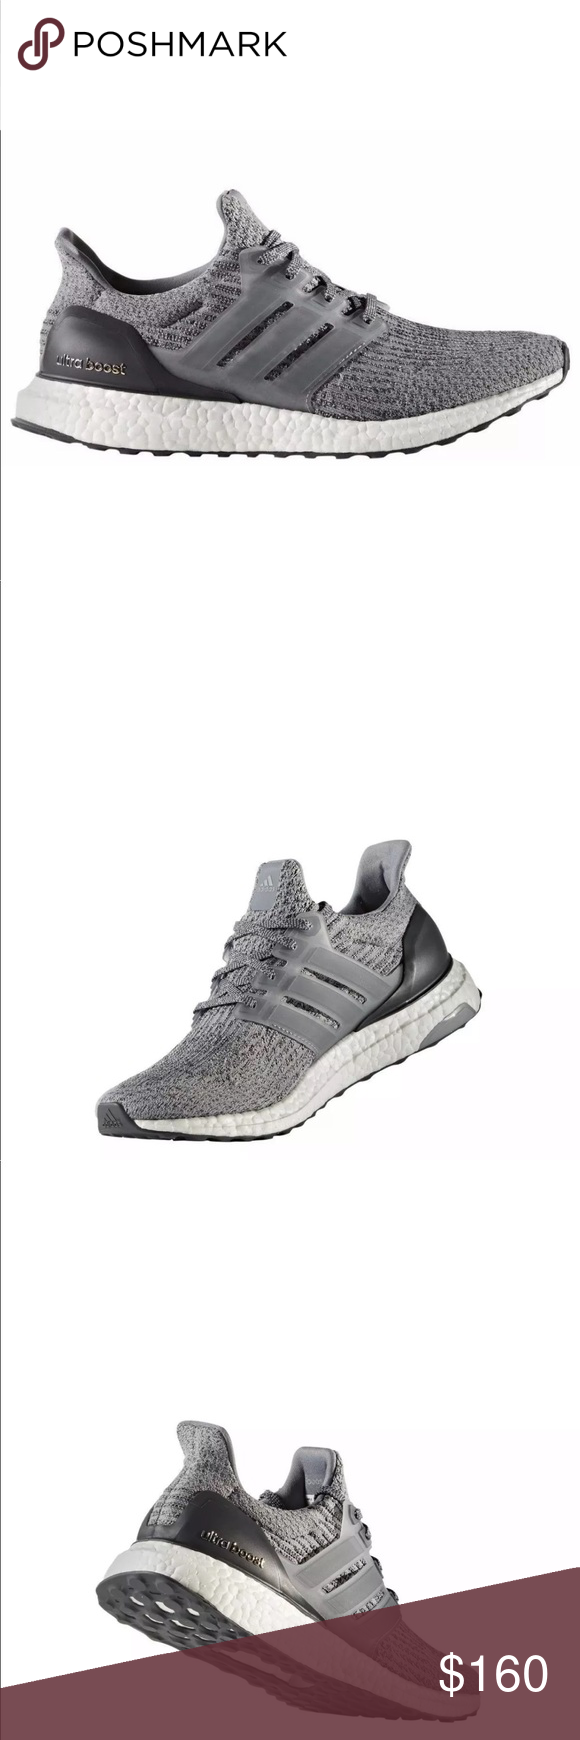 76e154a9bc2bb New! Mens Adidas Ultra Boost 3.0 Ultraboost  BA8849  Mens Adidas Ultra  Boost 3.0